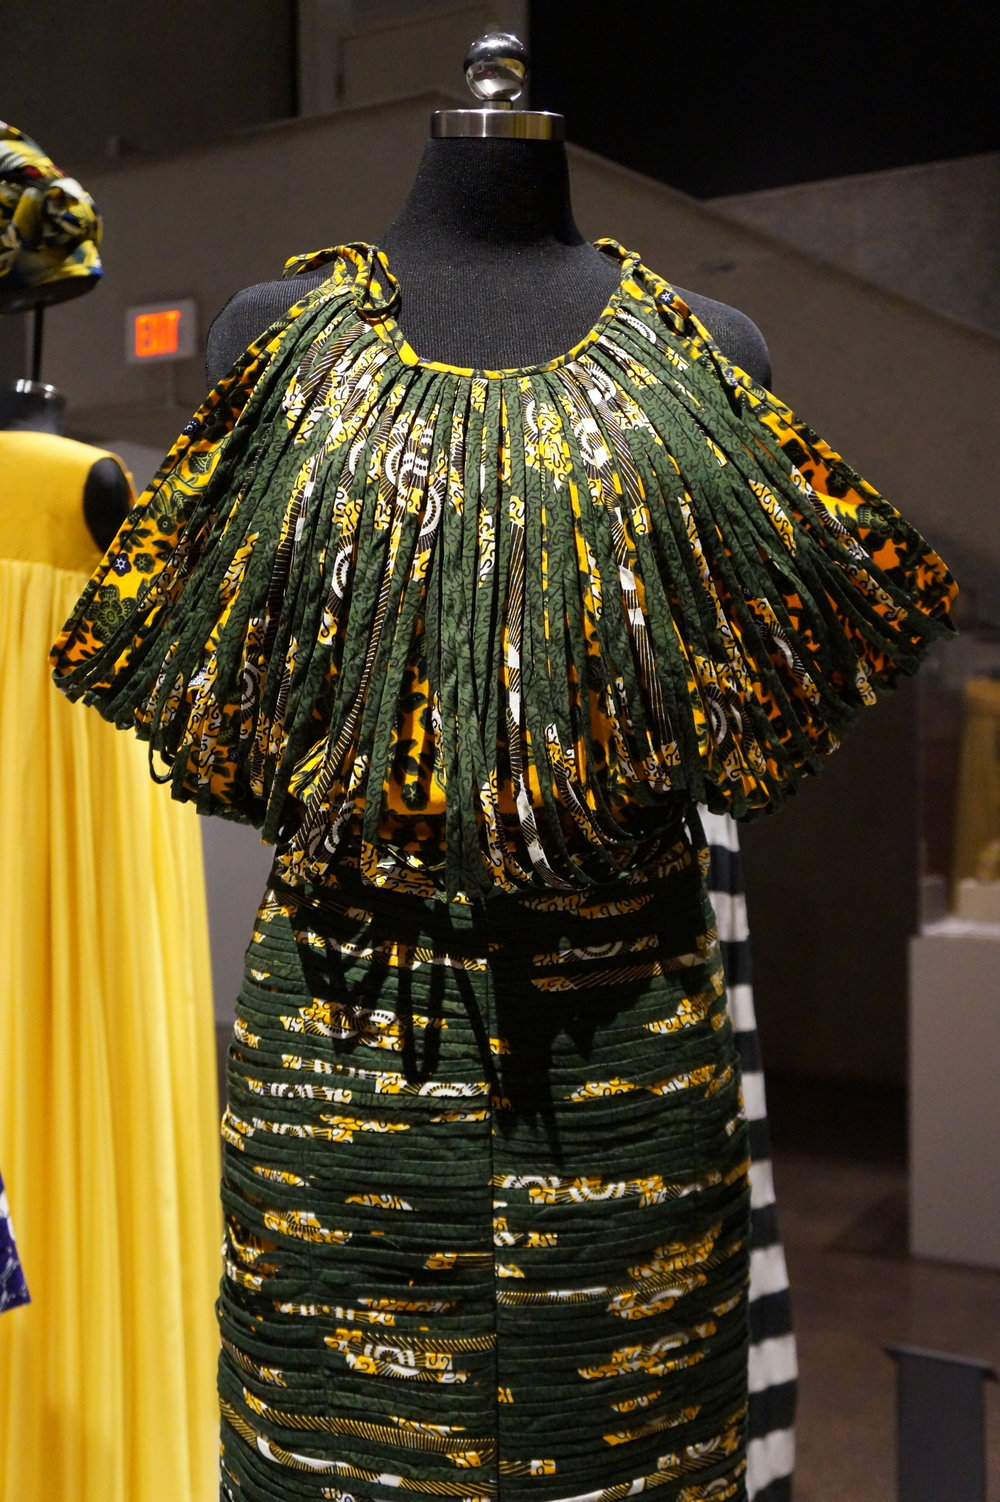 Andrea Fenise Memphis Fashion Blogger shares African Pritn Fashion Now exhibit